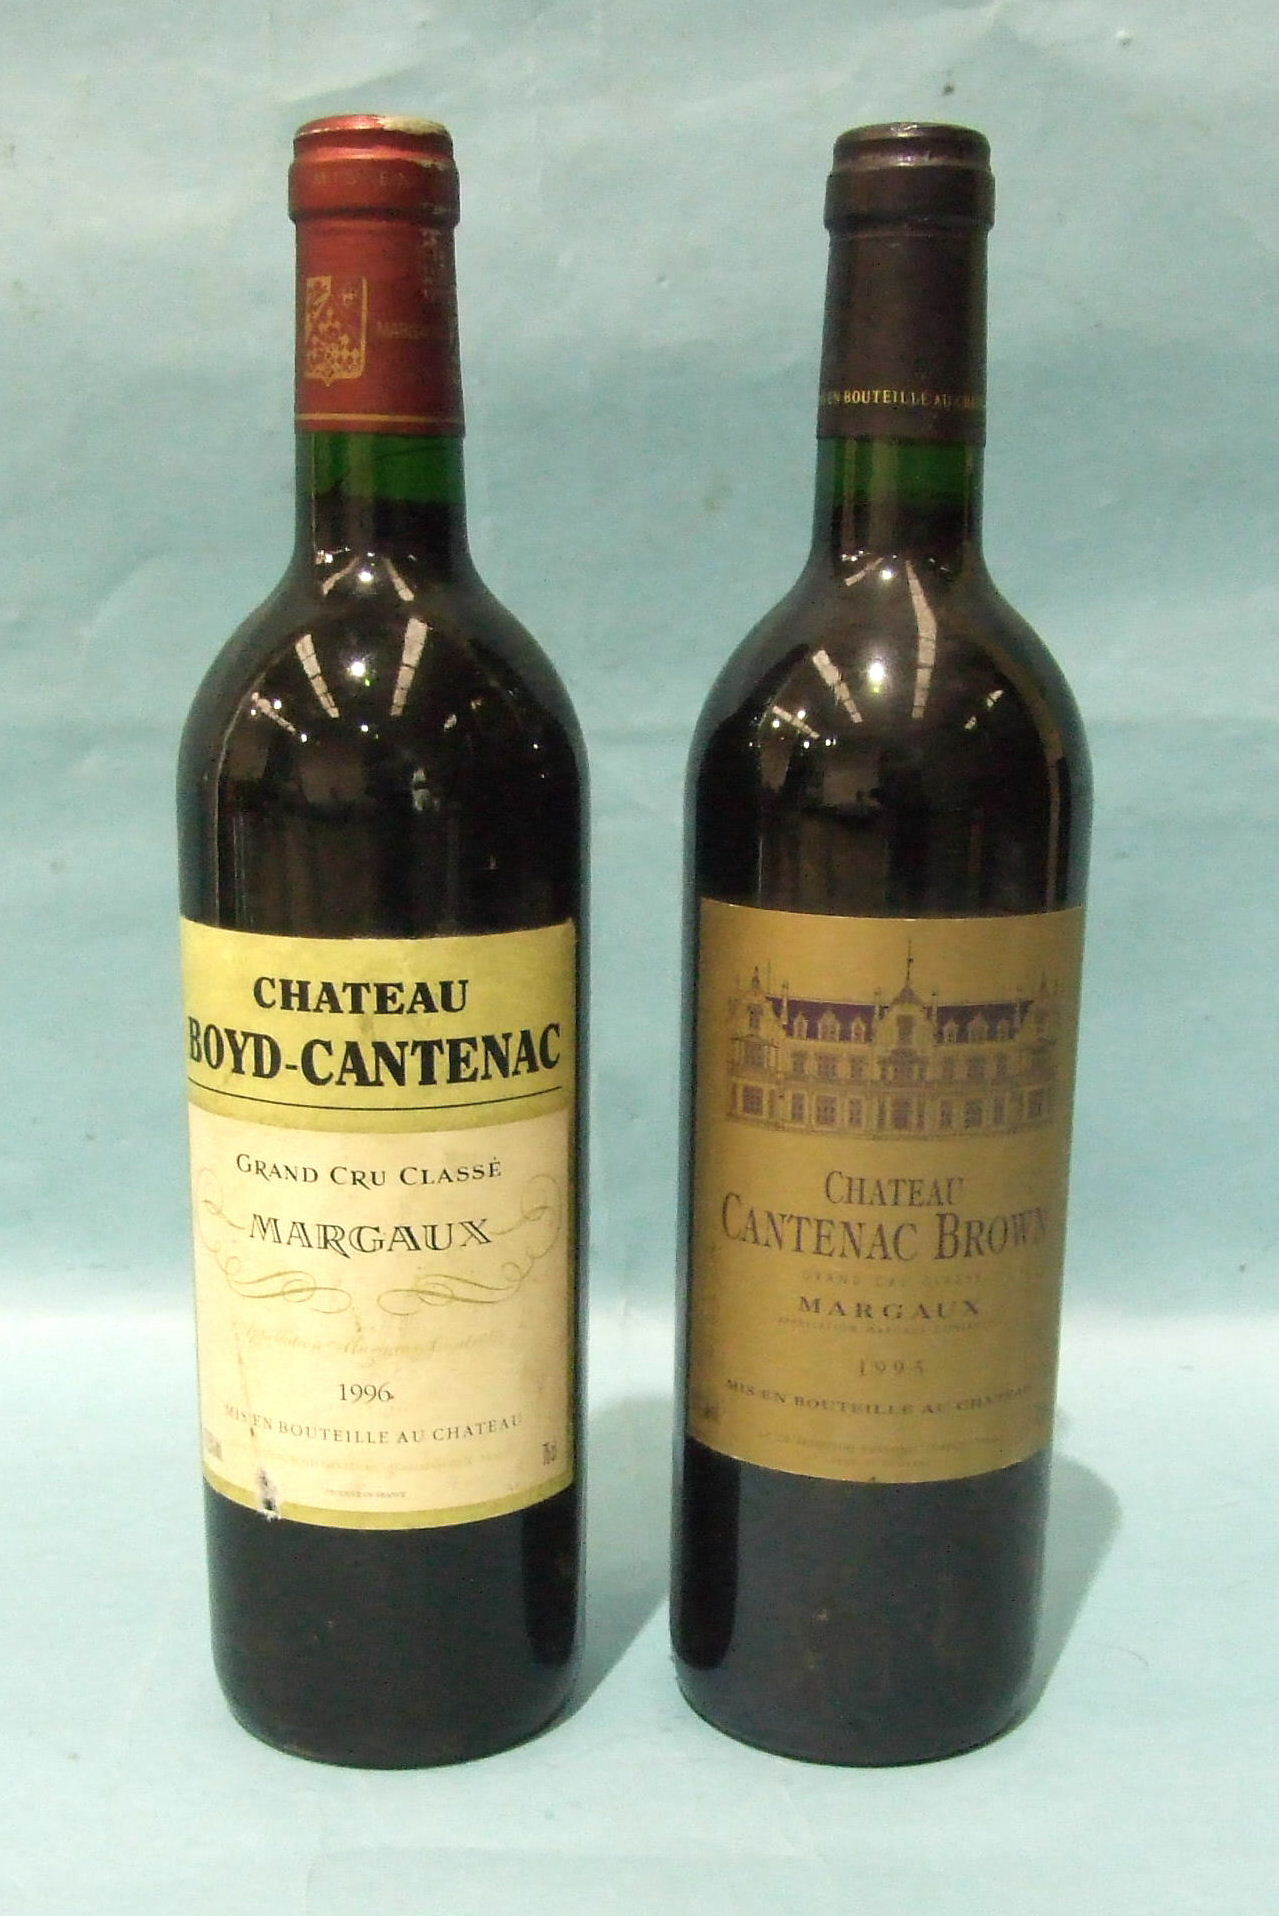 Lot 21 - Chateau Cantenac Brown 1995, one bottle and Chateau Boyd-Cantenac 1996, one bottle, (2).